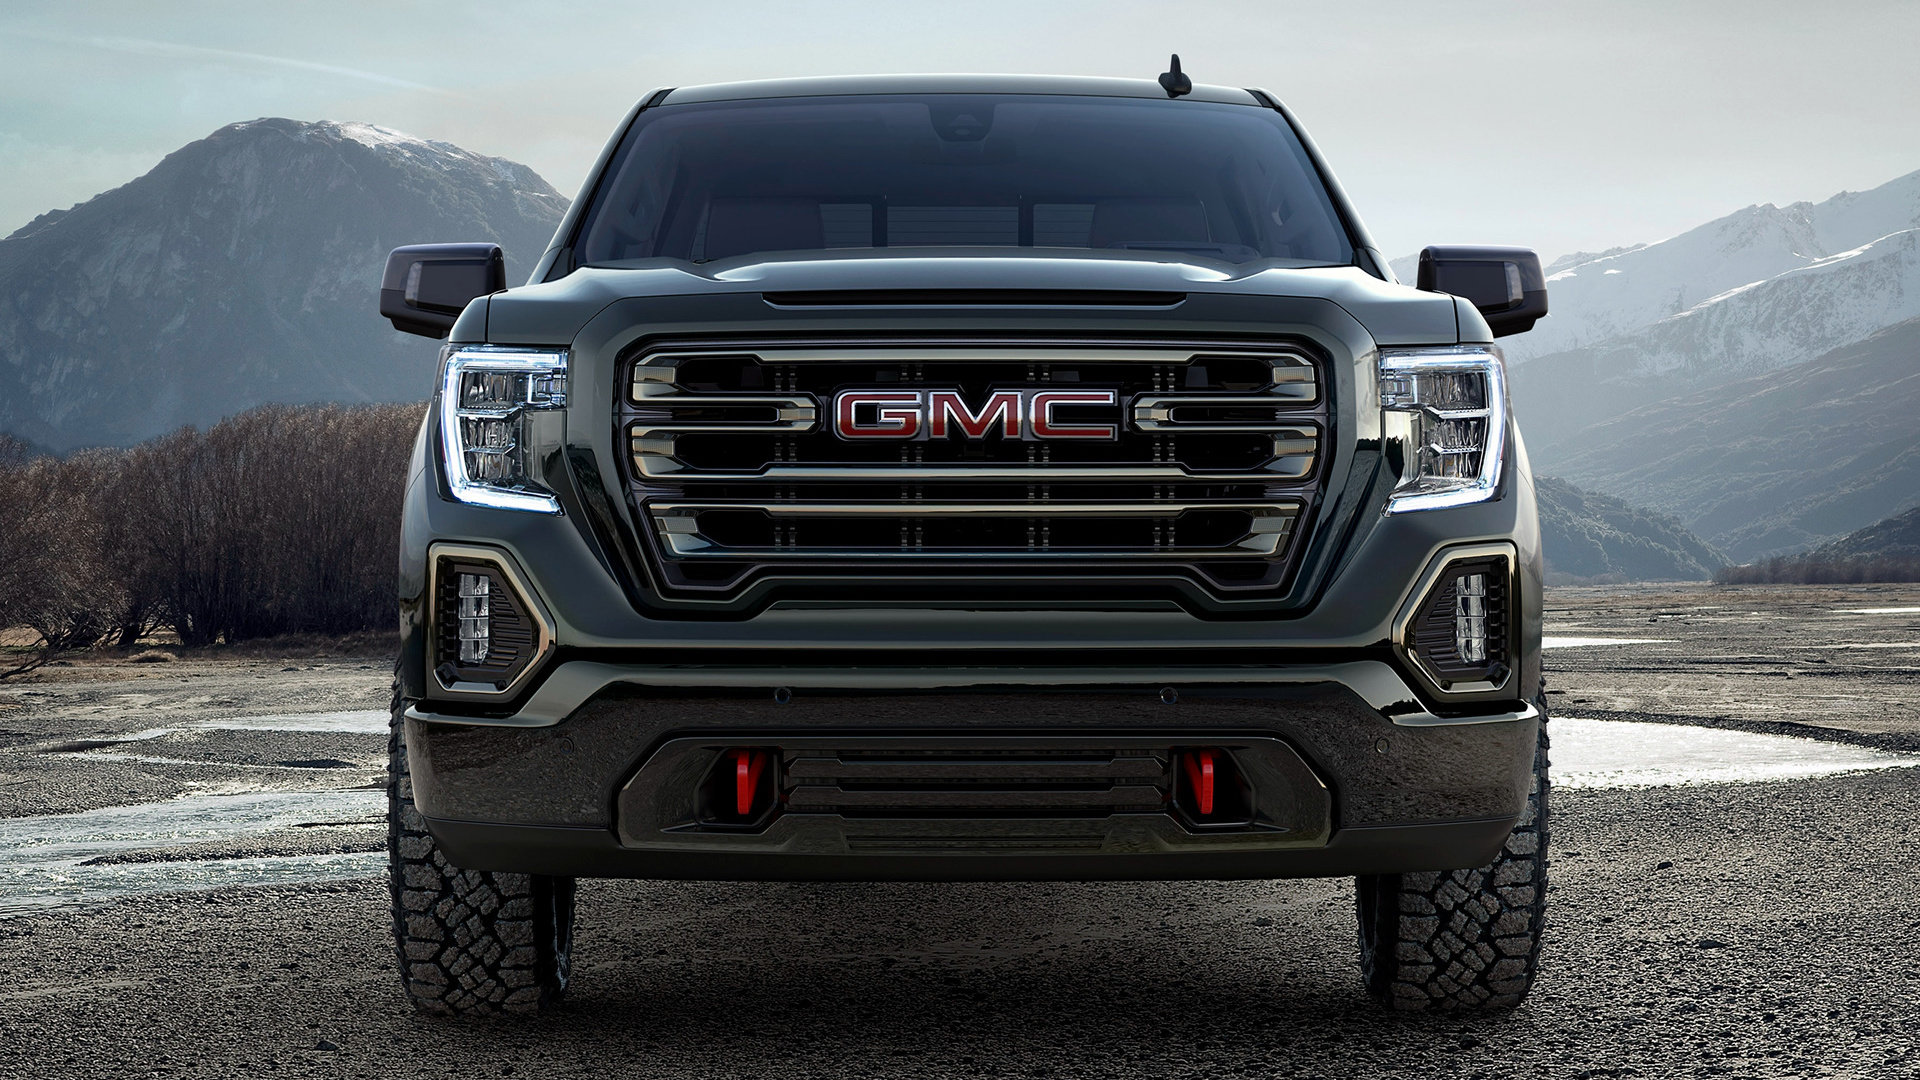 Free Download 2019 Gmc Sierra At4 Crew Cab Wallpapers And Hd